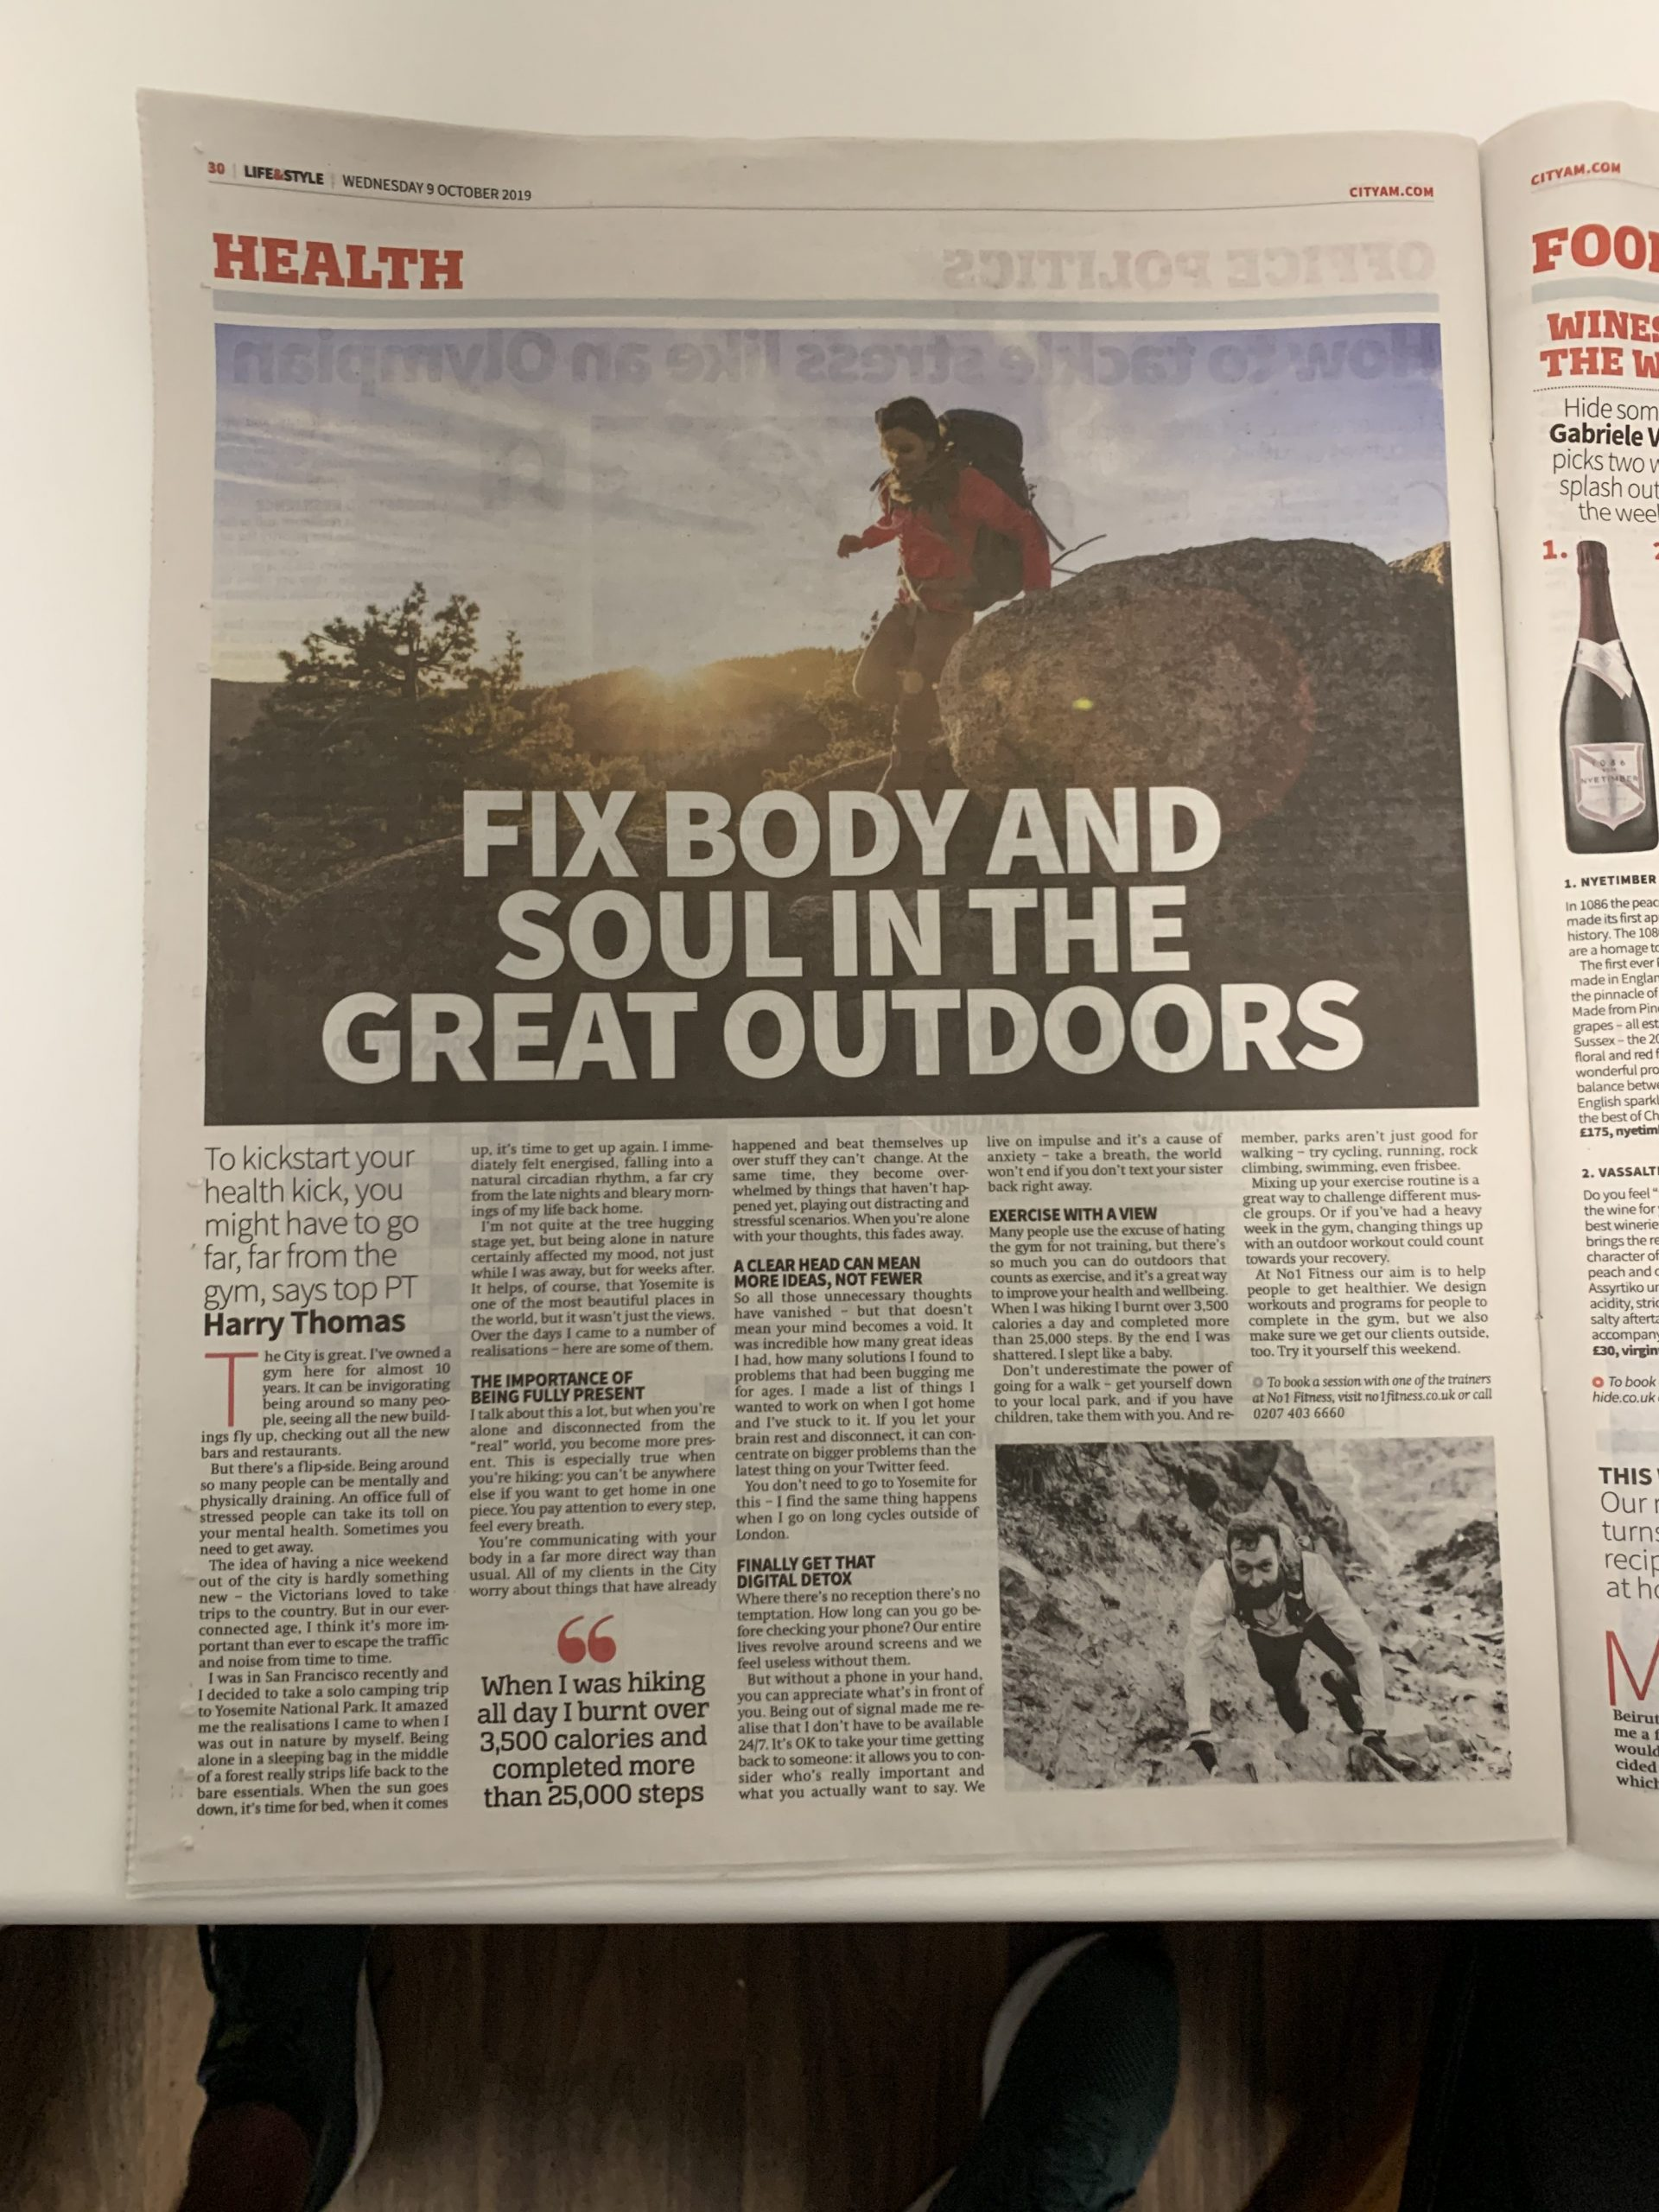 Fitness advice: Fix body and soul in the great outdoors